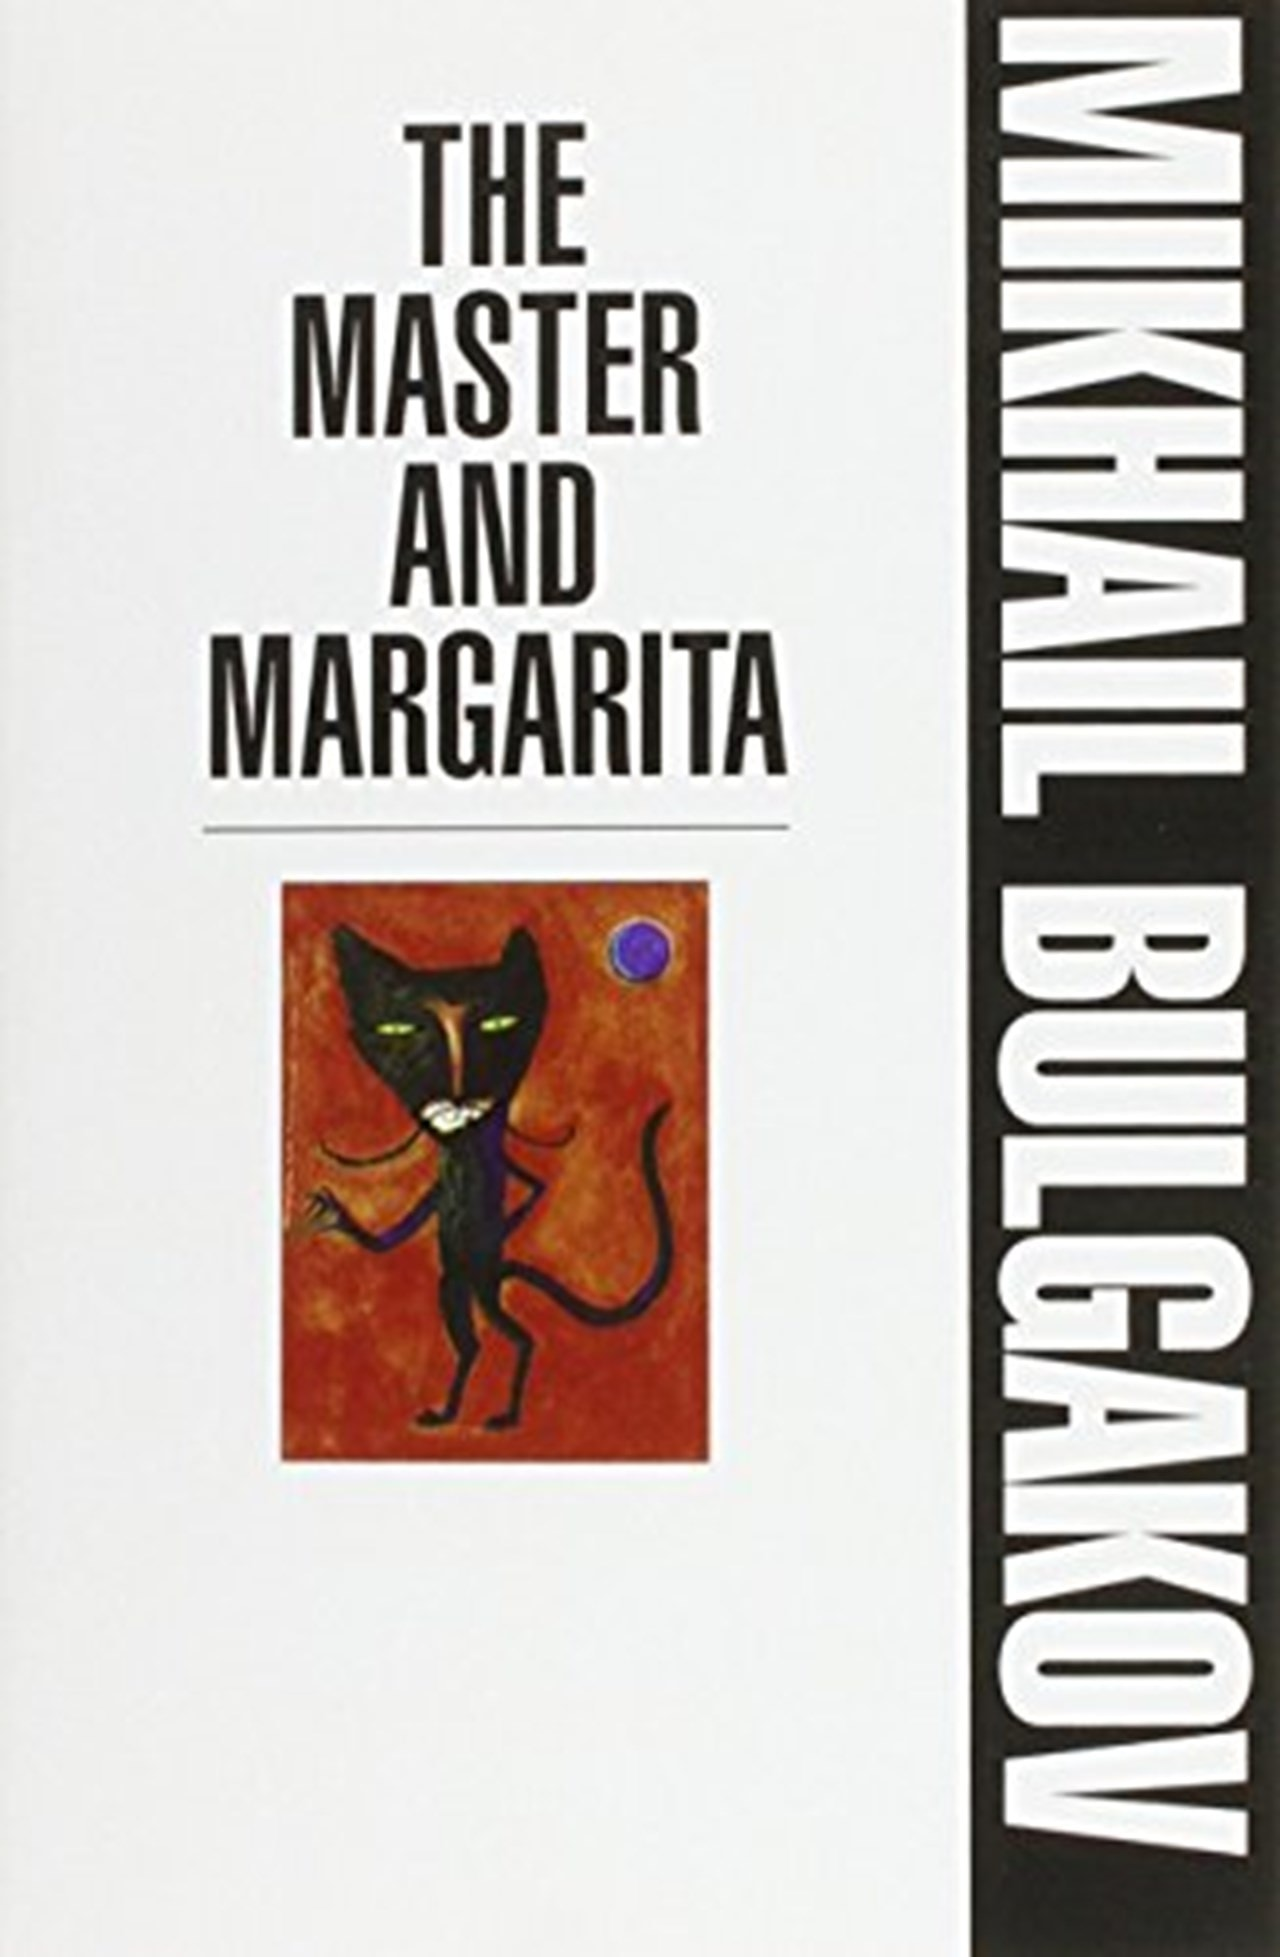 The Master & Margarita - 1